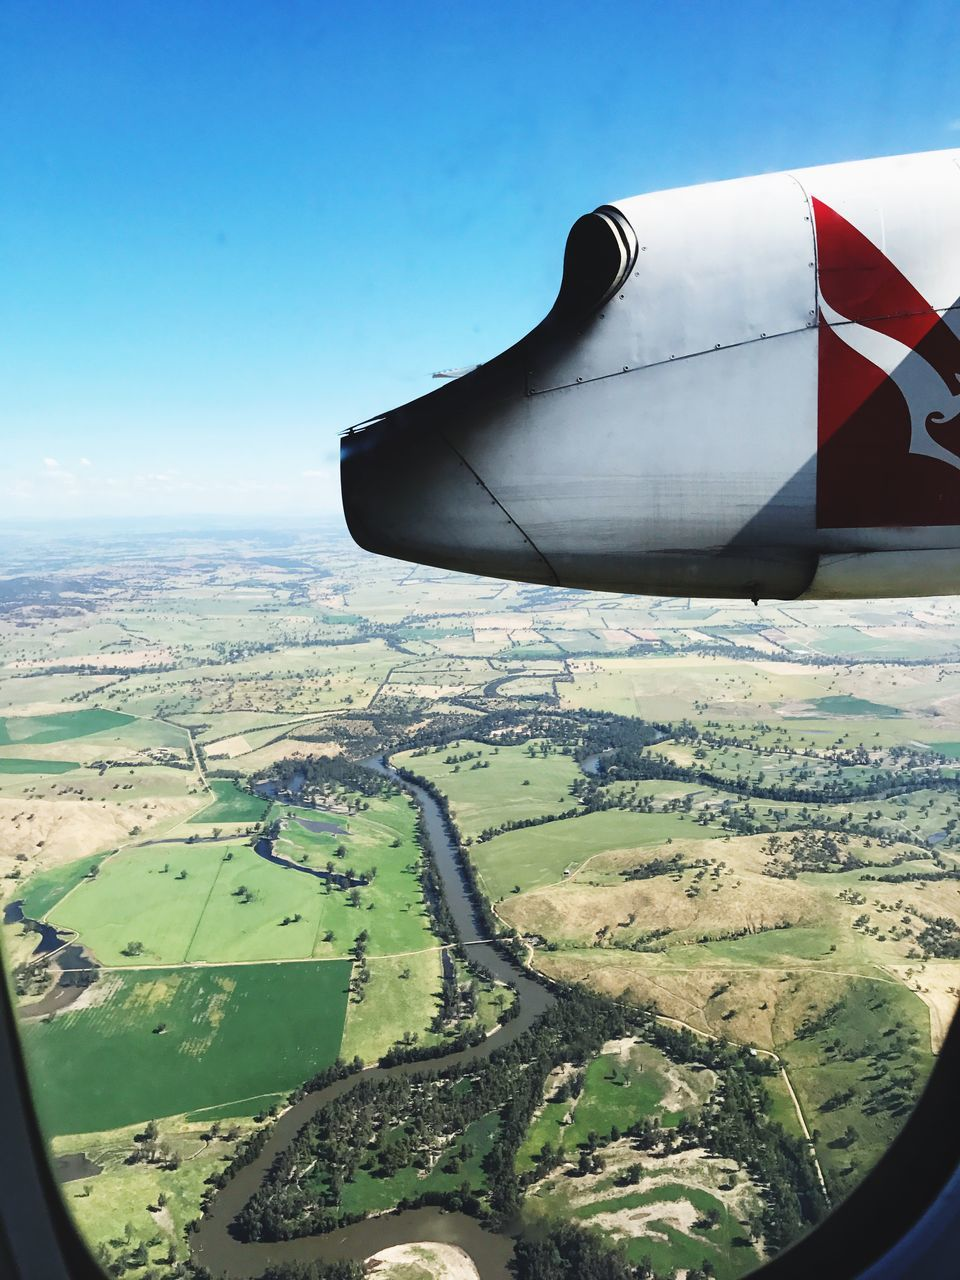 transportation, airplane, landscape, aerial view, air vehicle, flying, mode of transport, day, journey, travel, mid-air, outdoors, no people, nature, sky, clear sky, scenics, patchwork landscape, beauty in nature, airplane wing